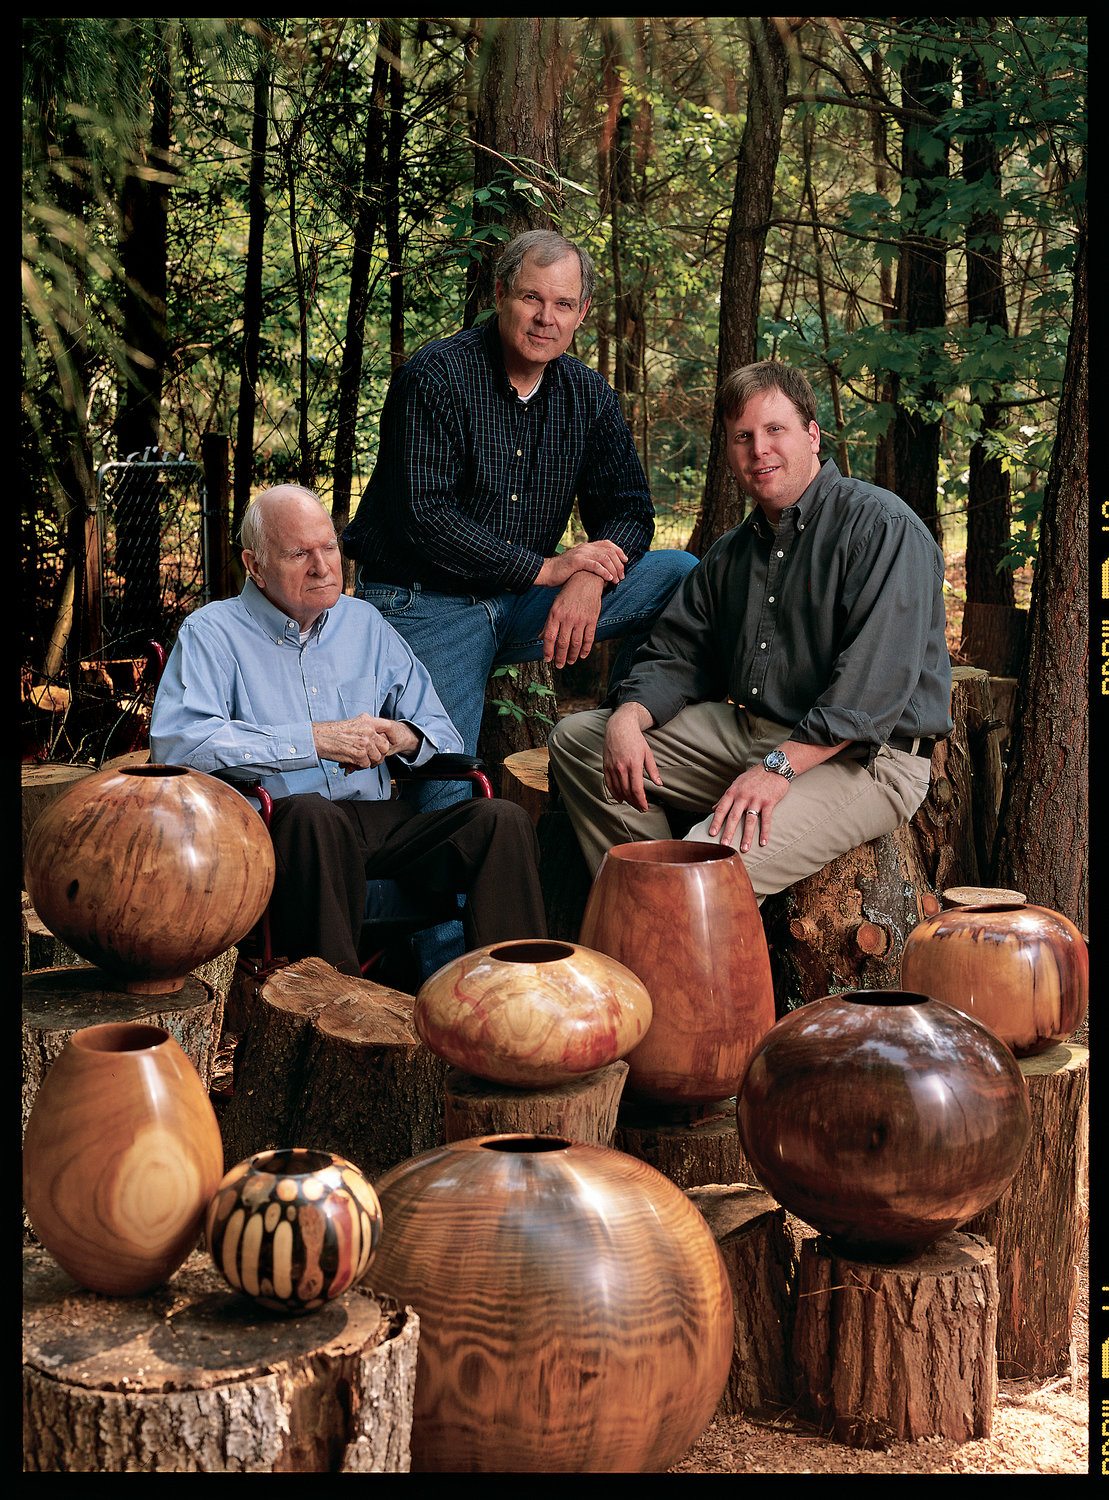 The Moulthrop family's three-generations of woodturners include Edward, his son Philip and grandson Matt.